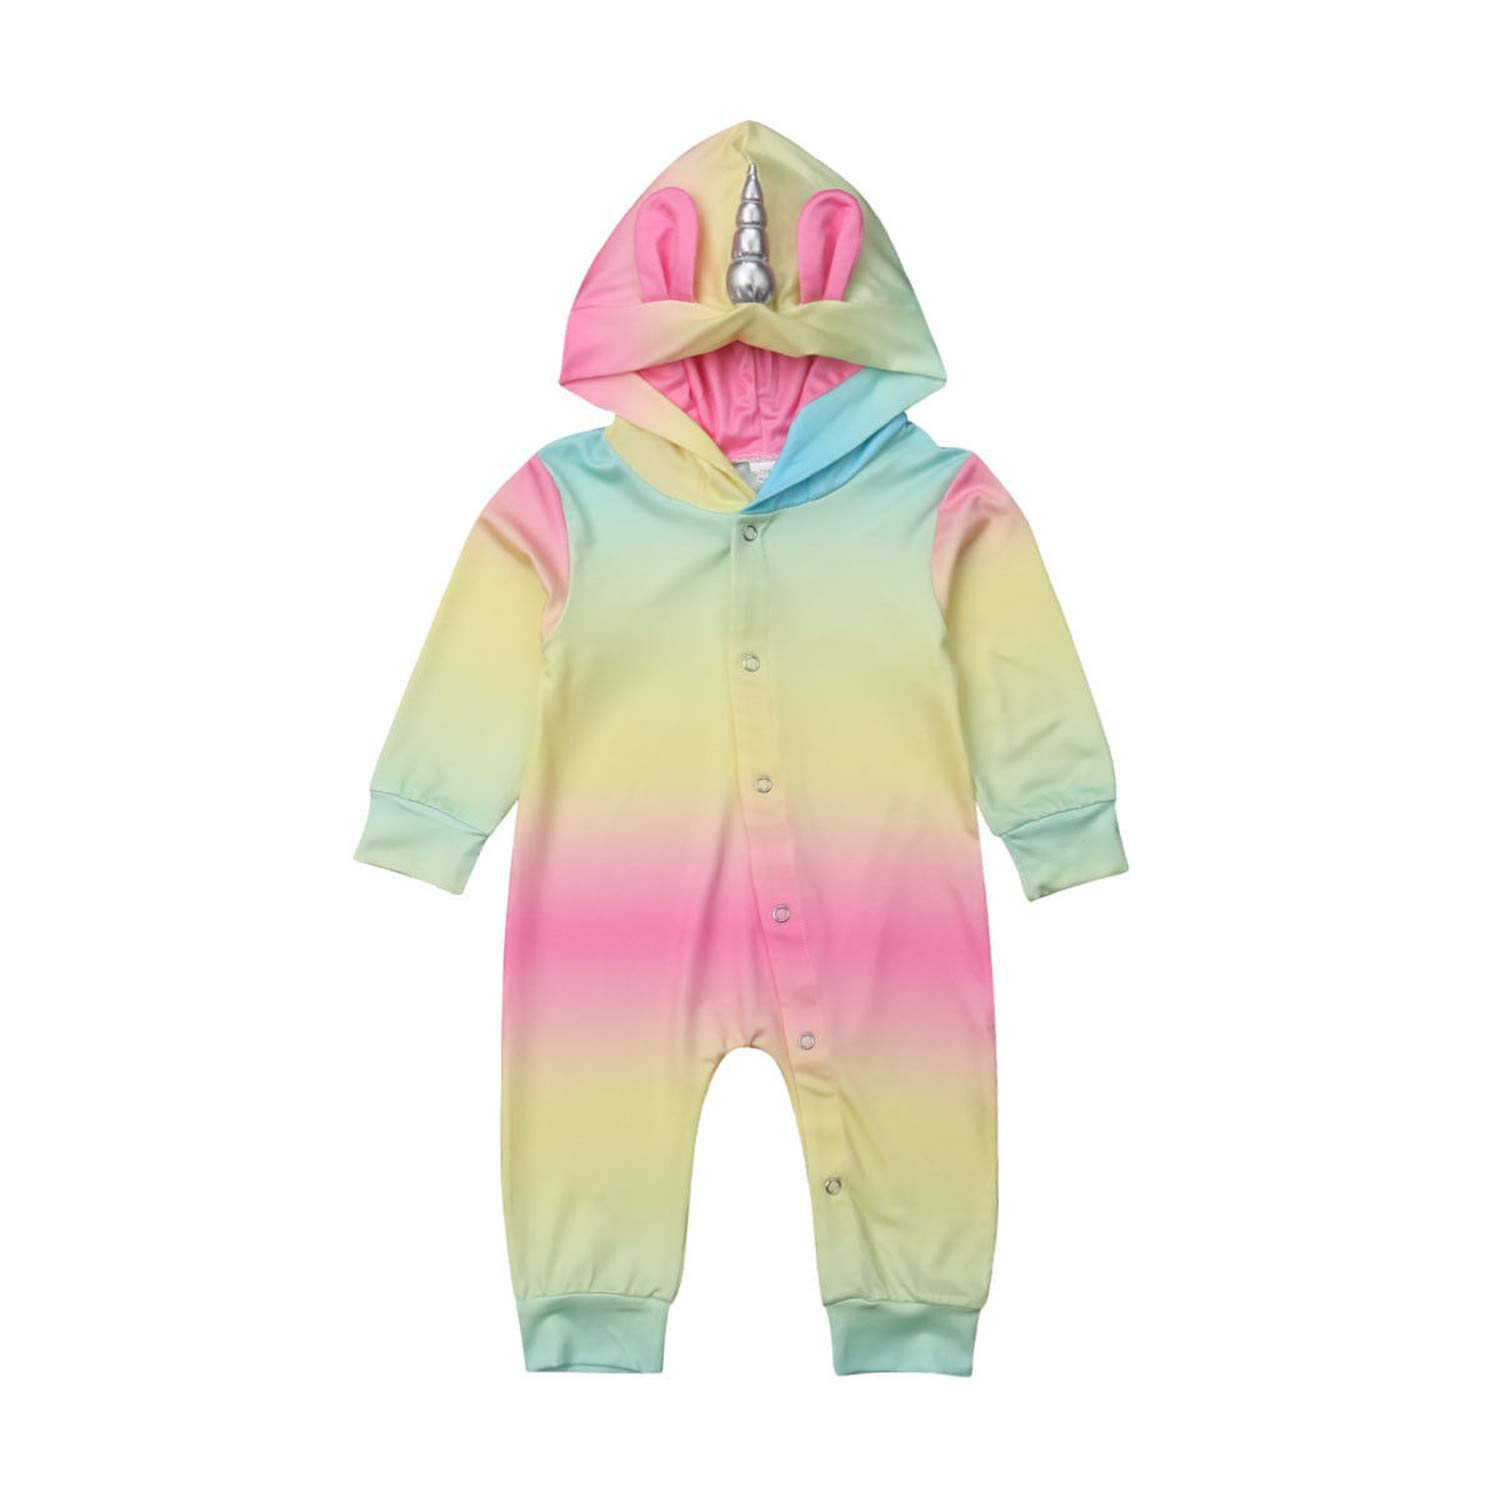 Cute Newborn Baby Young Man Girl Long Sleeve Unicorn Hooded Romper Jumpsuit Playsuit Outfits Baby Clothes Princess or Queen Prince